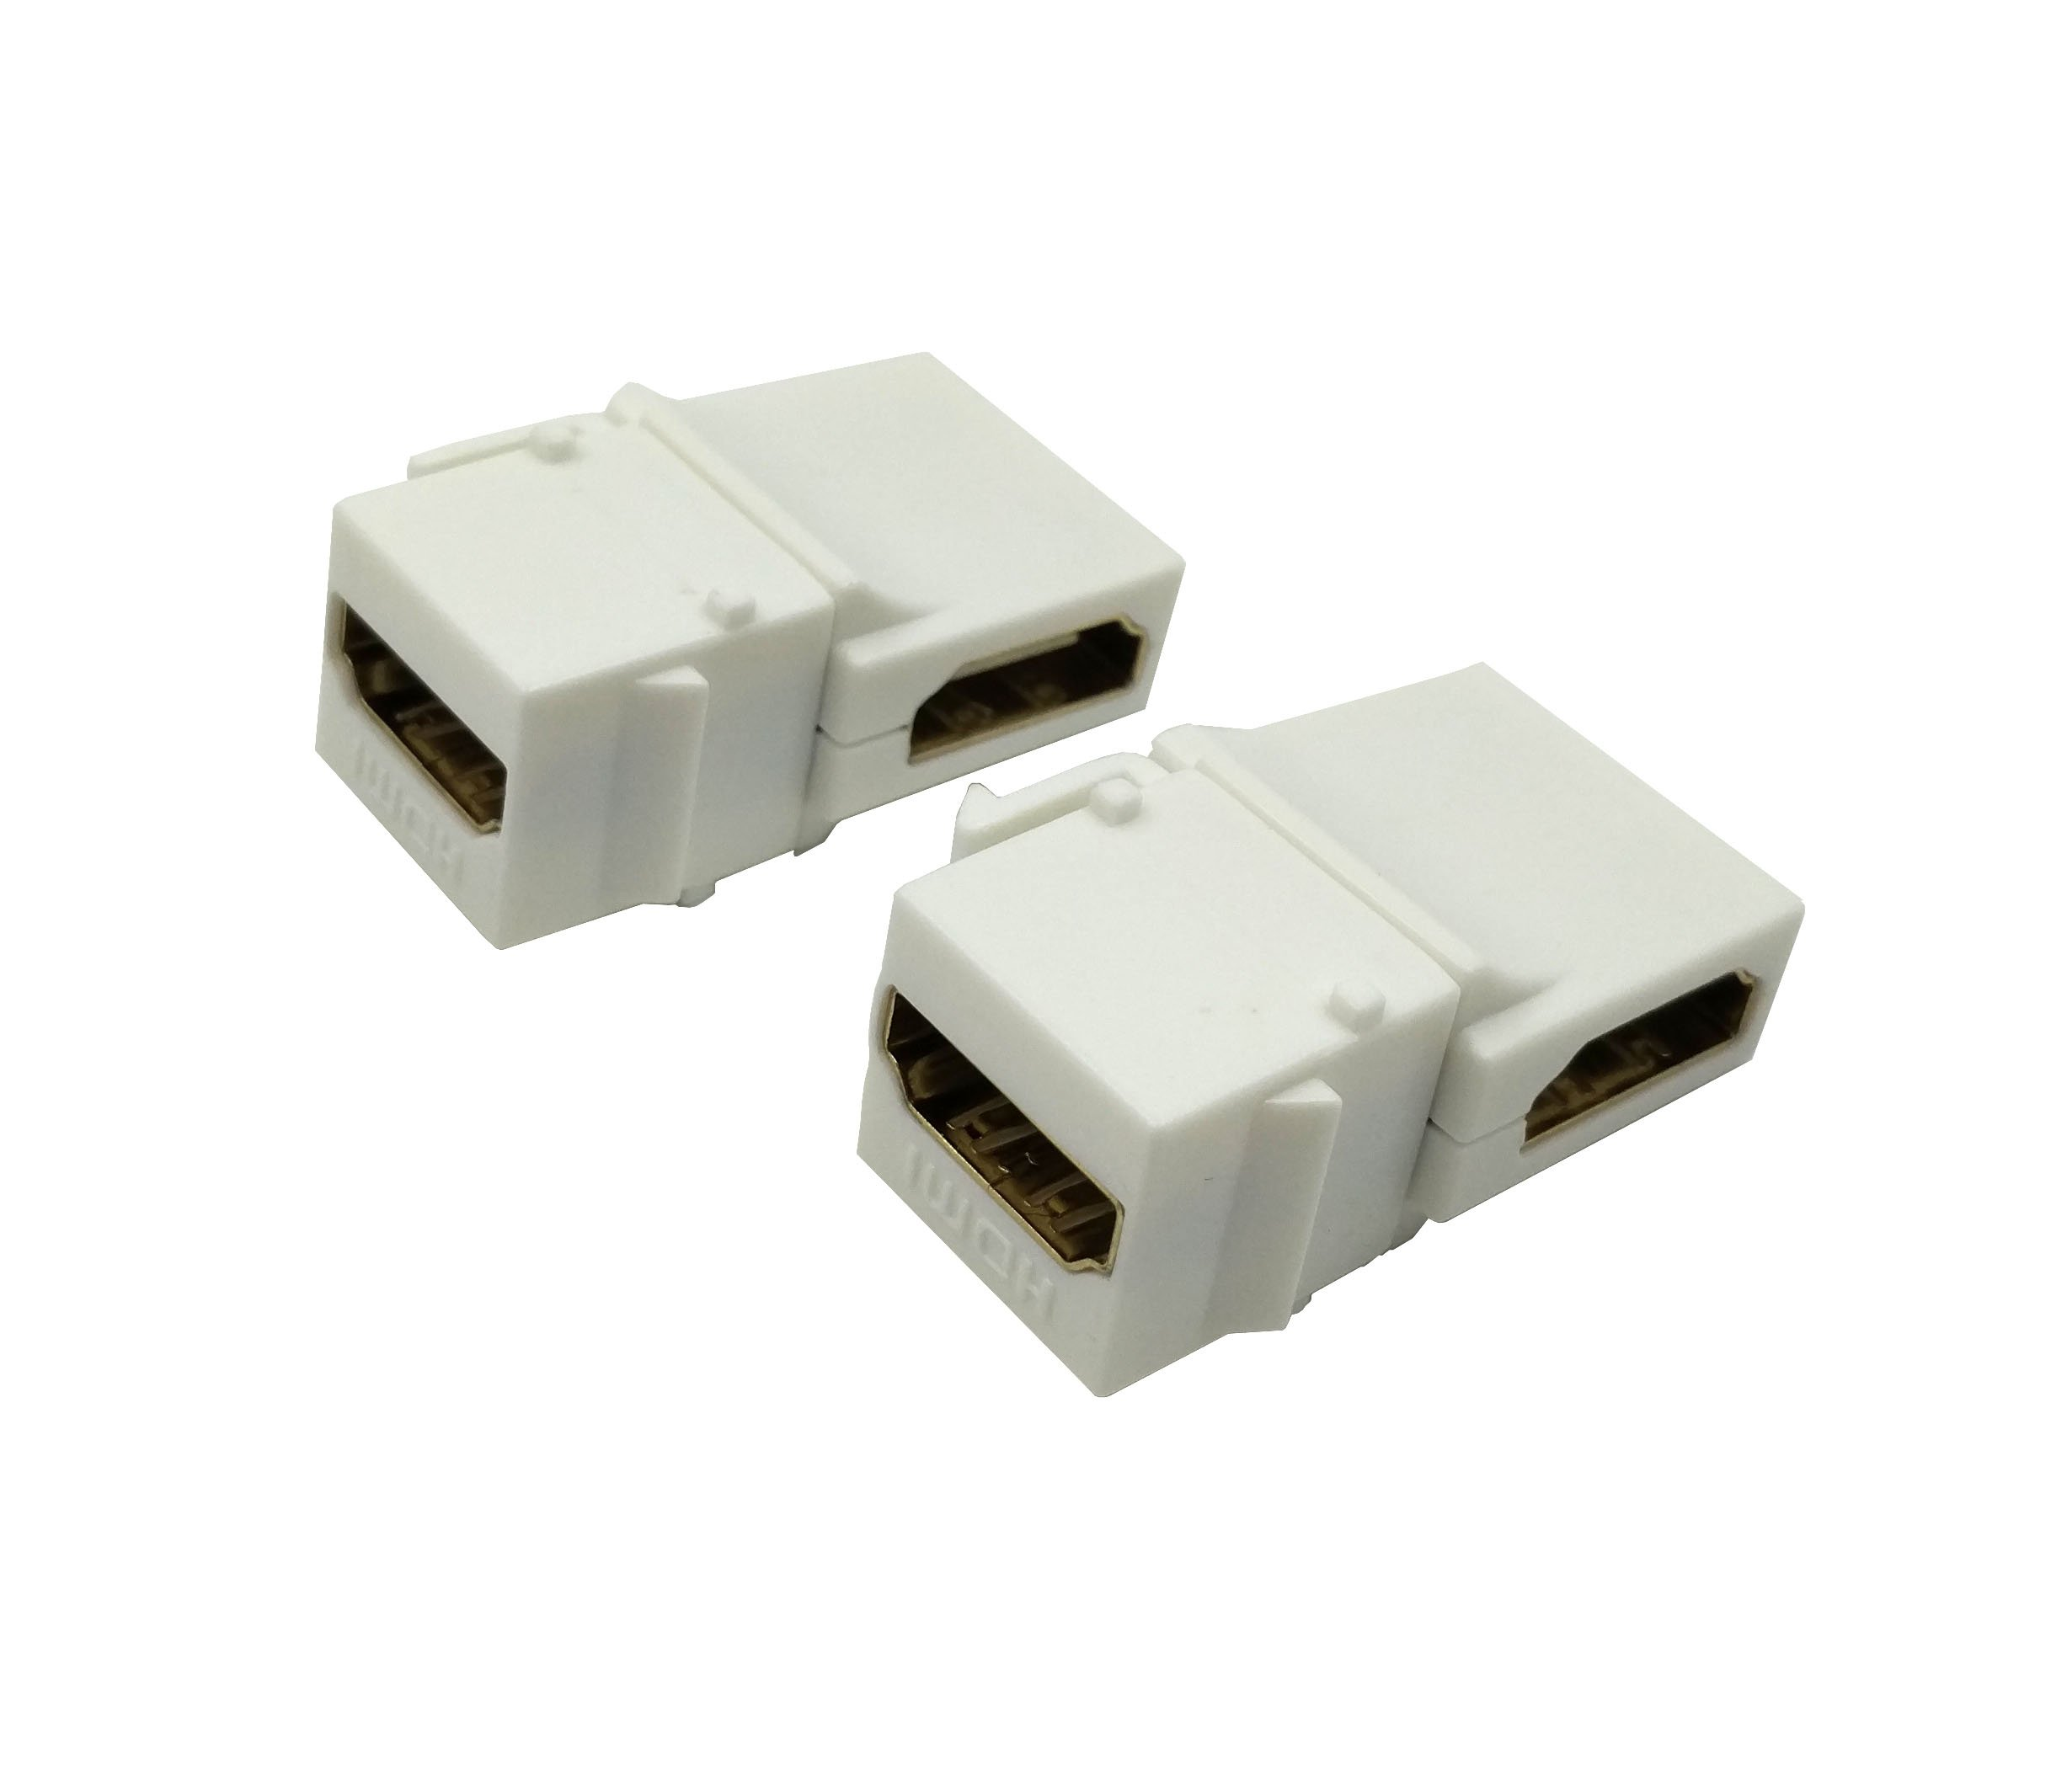 Exuun HDMI Keystone Jack, (2-Pack) Gold-Plated HDMI Female to Female Insert Wall Plate Connectors Adapter With 90 Degree Feed